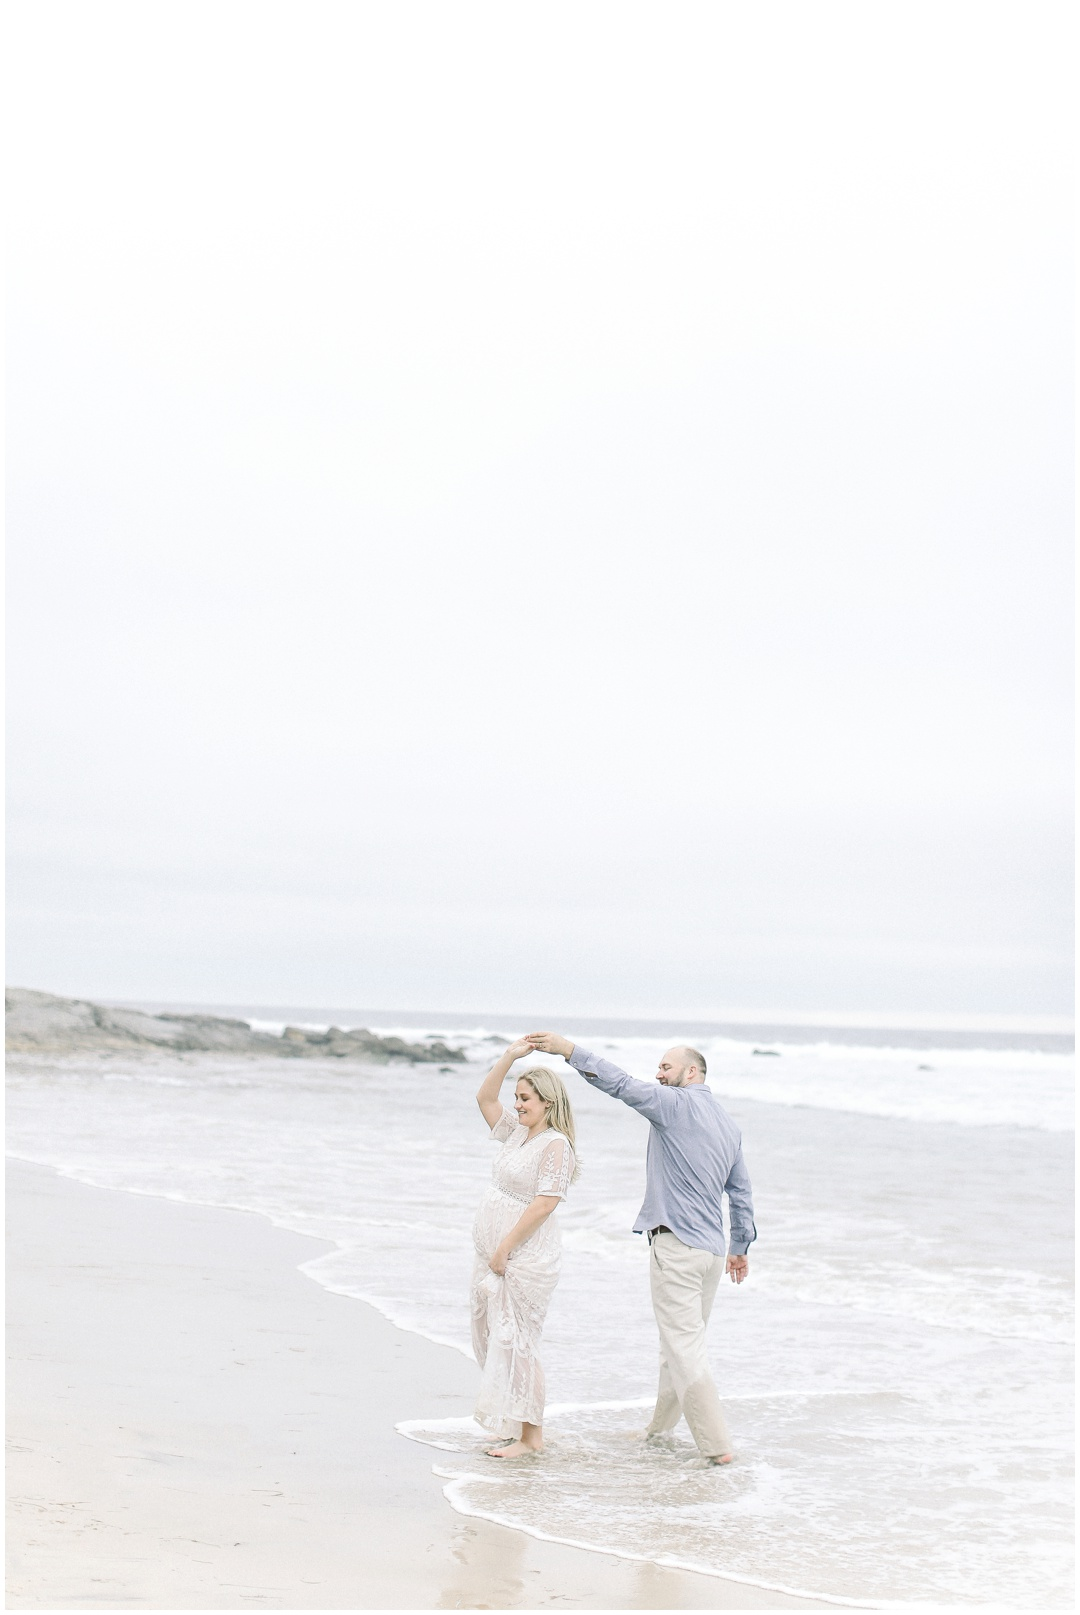 Newport_Beach_Newborn_Light_Airy_Natural_Photographer_Newport_Beach_Photographer_Orange_County_Family_Photographer_Cori_Kleckner_Photography_Newport_Beach_Photographer_Marisa_Podesto_Todd_Podesto__3979.jpg